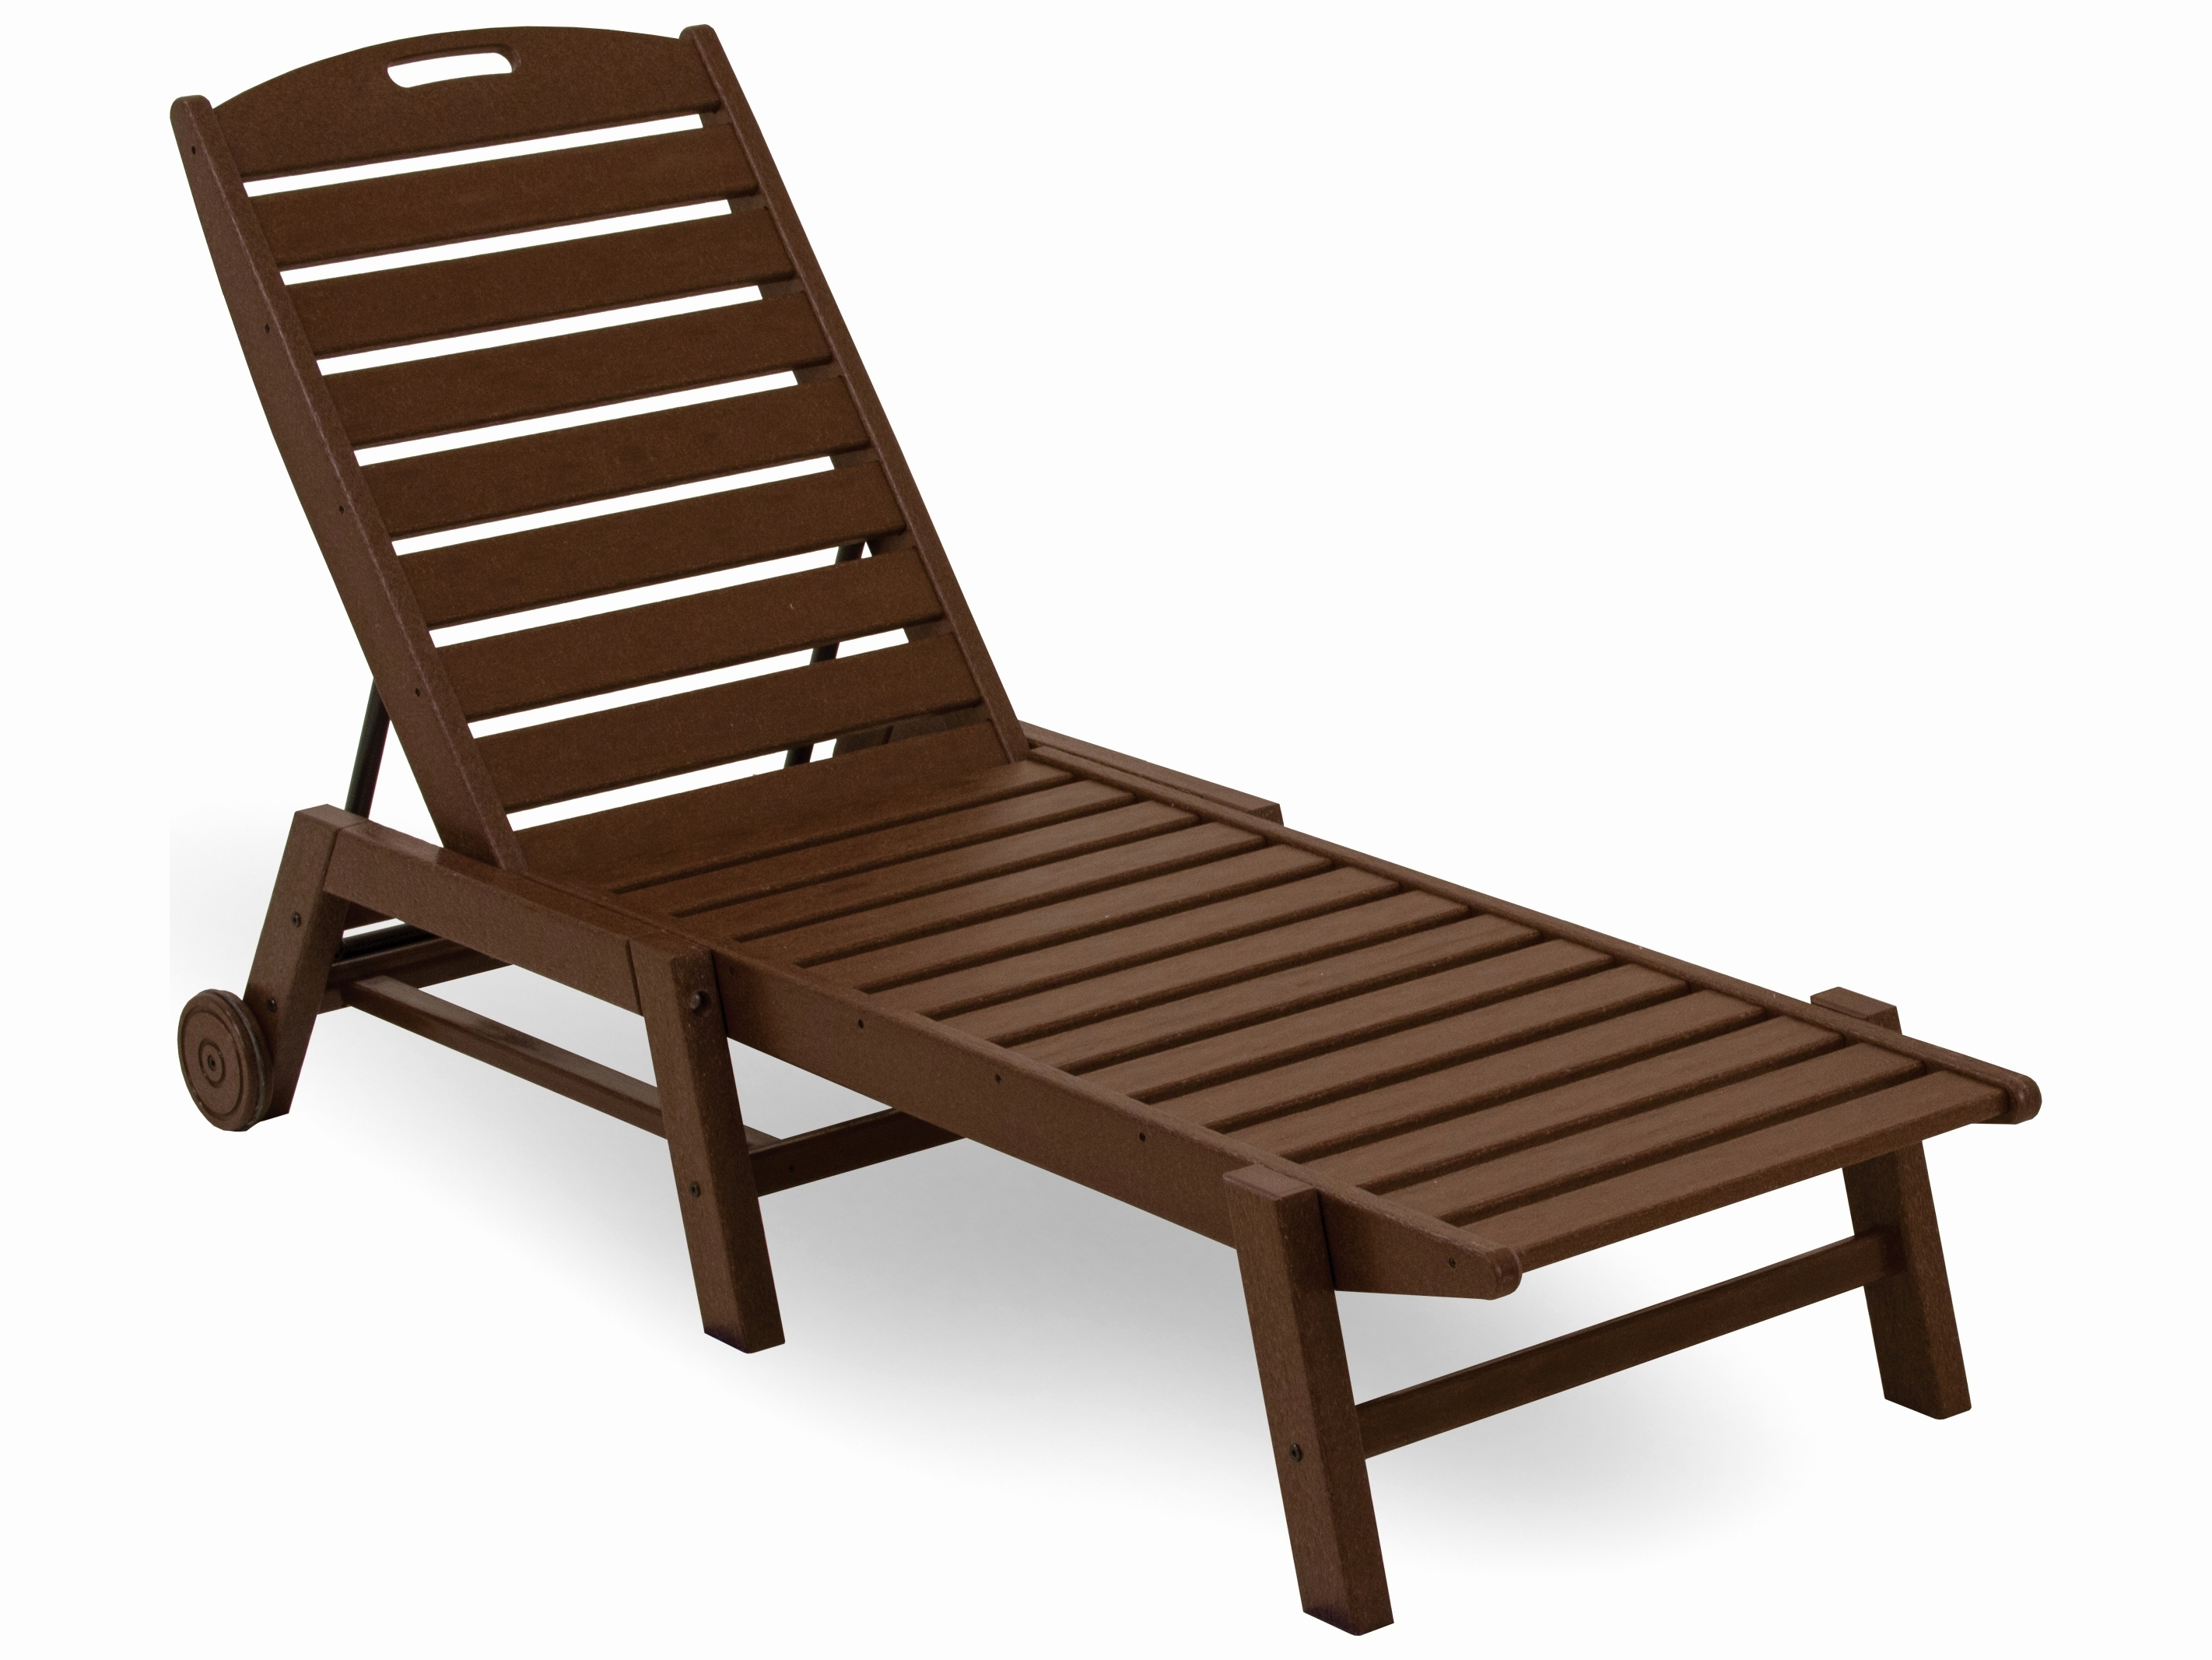 Adams Chaise Lounges Within Most Up To Date Convertible Chair : Hard Plastic Chaise Lounge Chairs Outdoor (View 13 of 15)